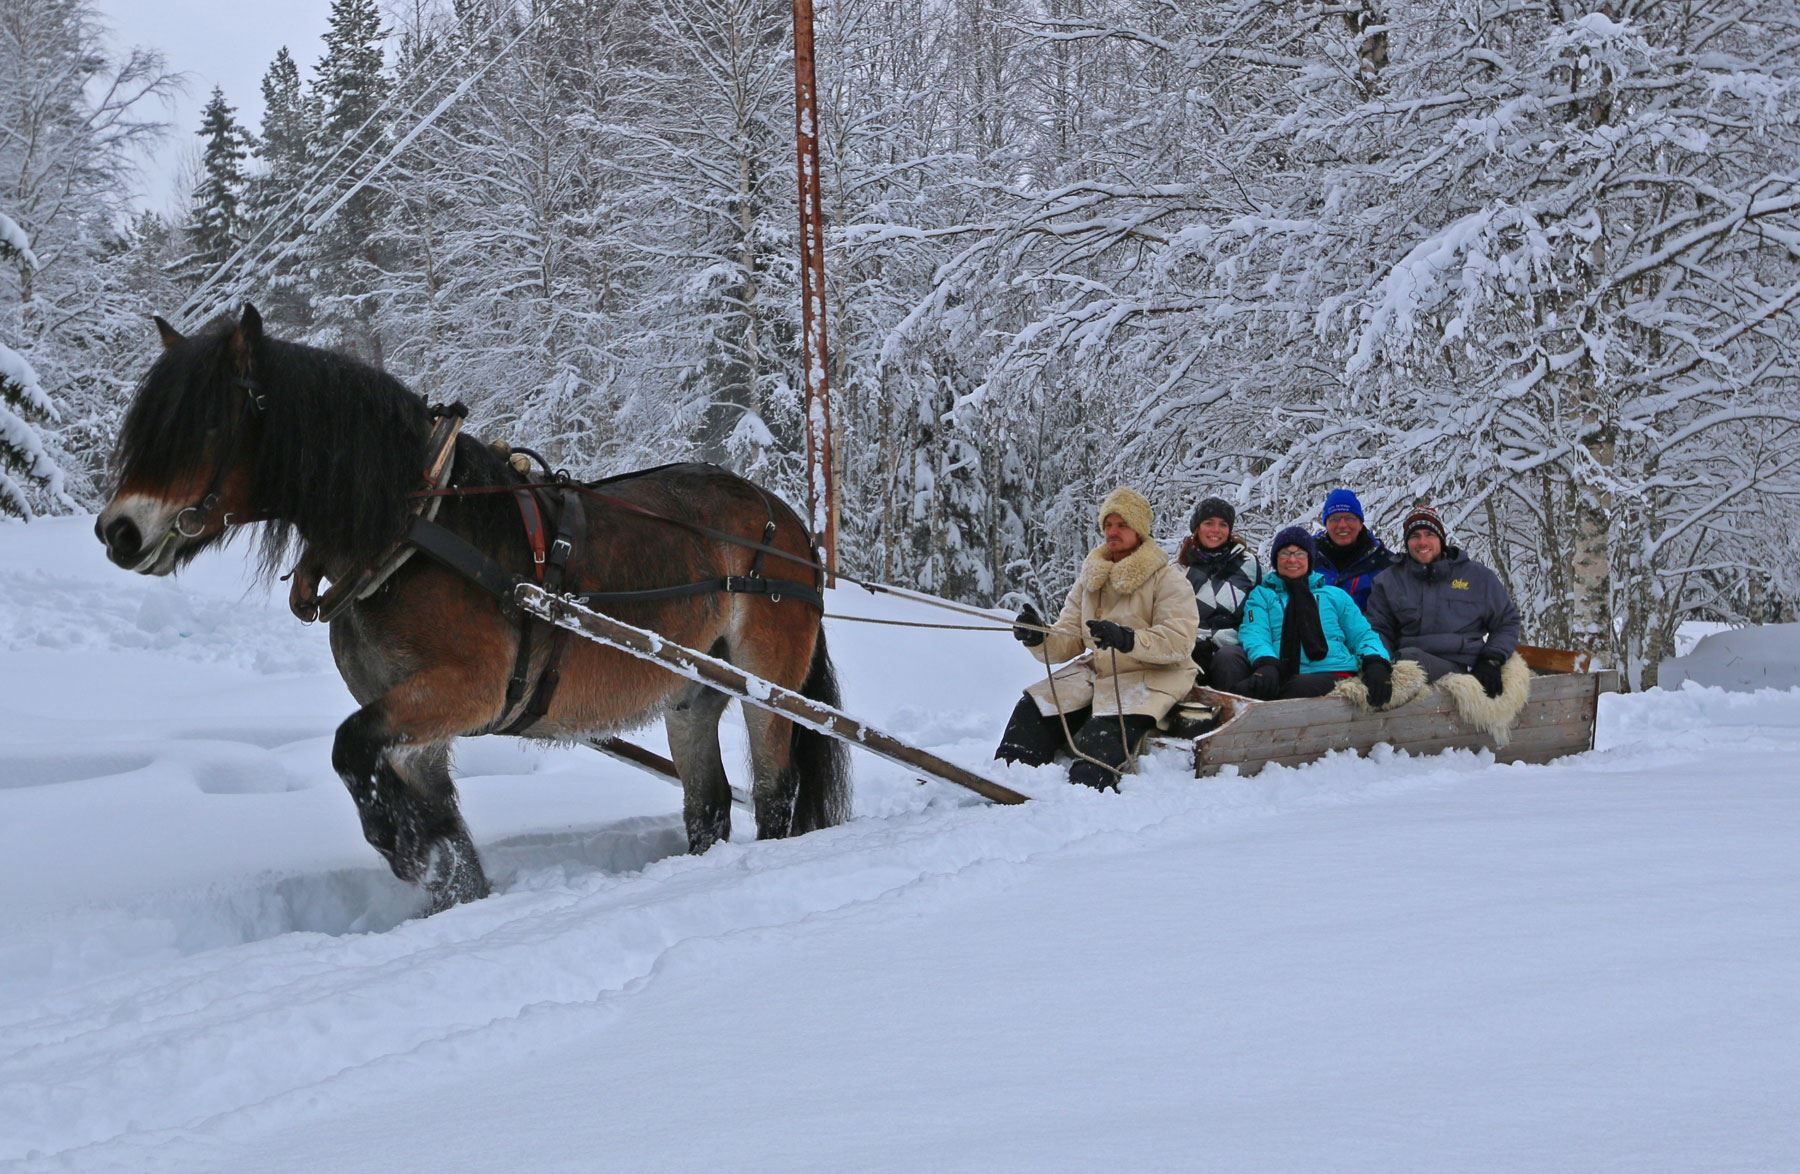 © Backfors Gård, Northern lights by horse and sleigh